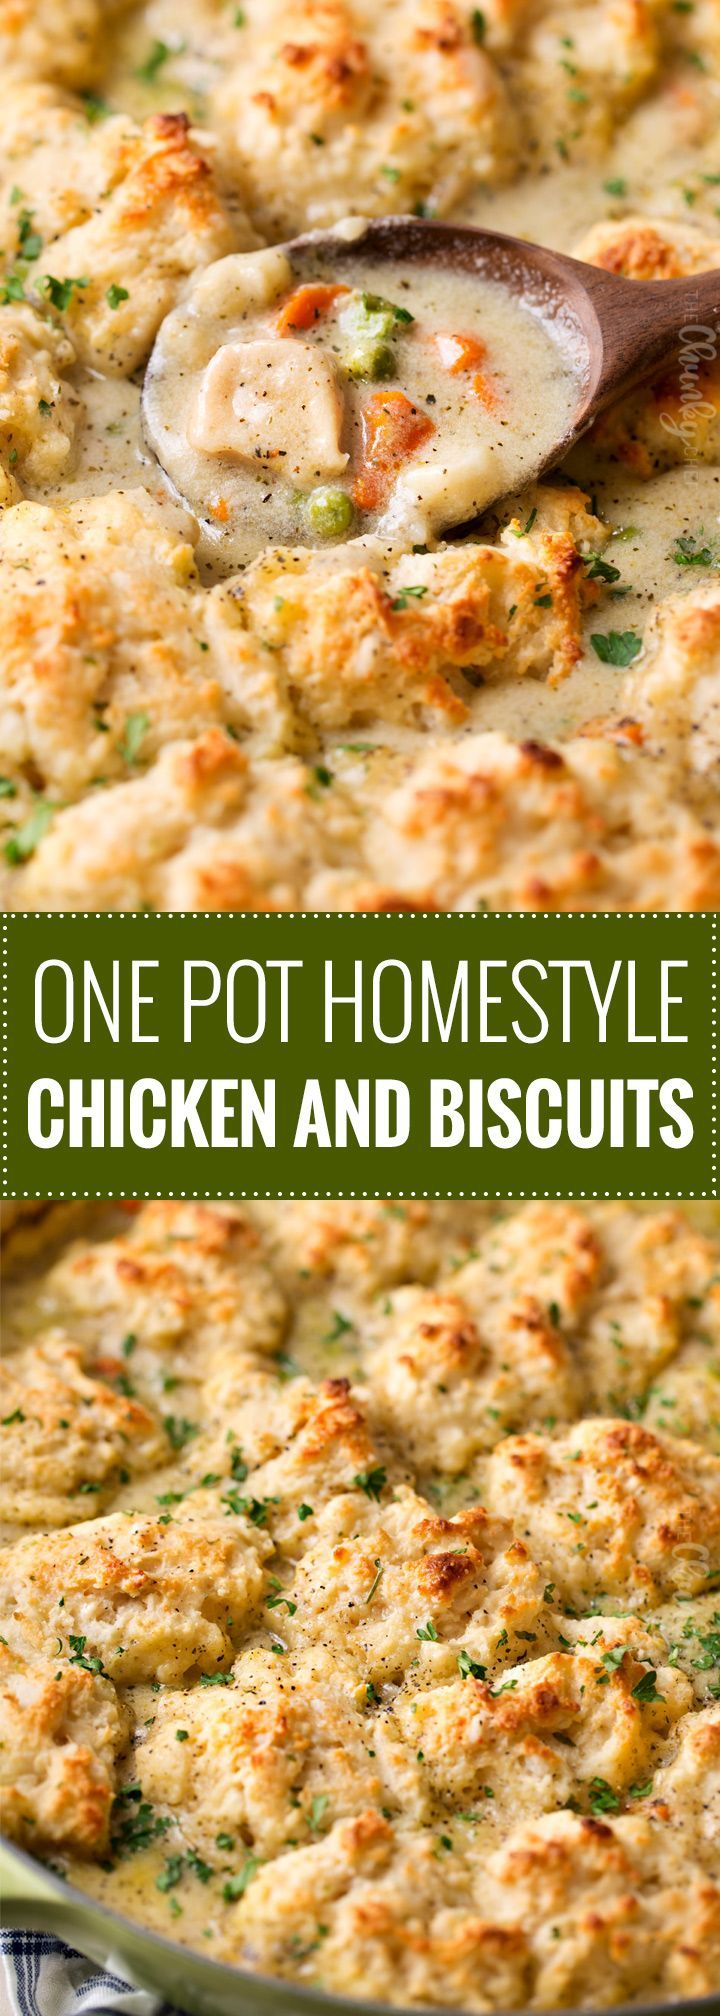 Homestyle Chicken and Biscuits